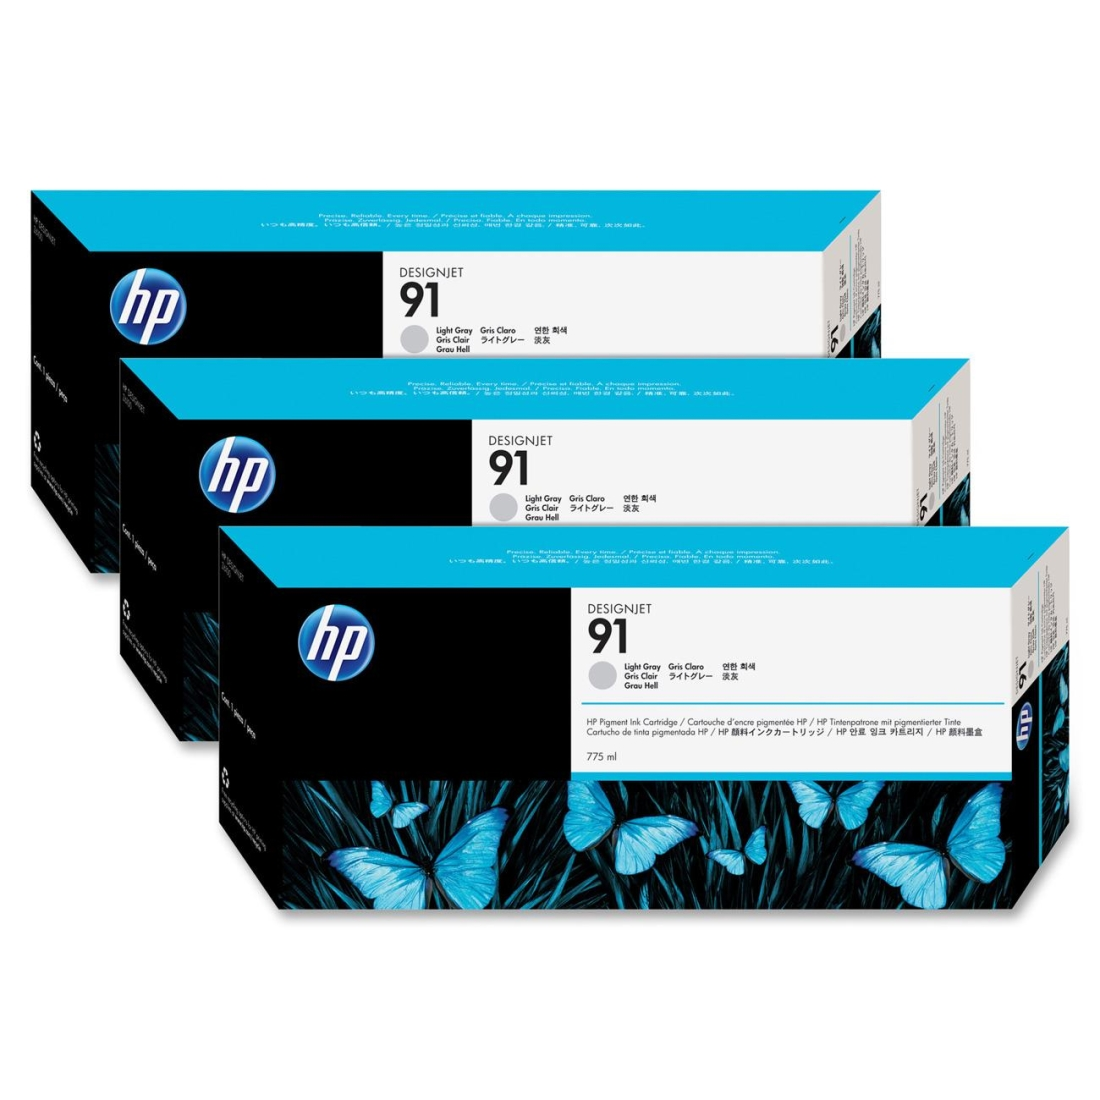 HP 91 Light Gray Ink Cartridge C9482A 3-Pack